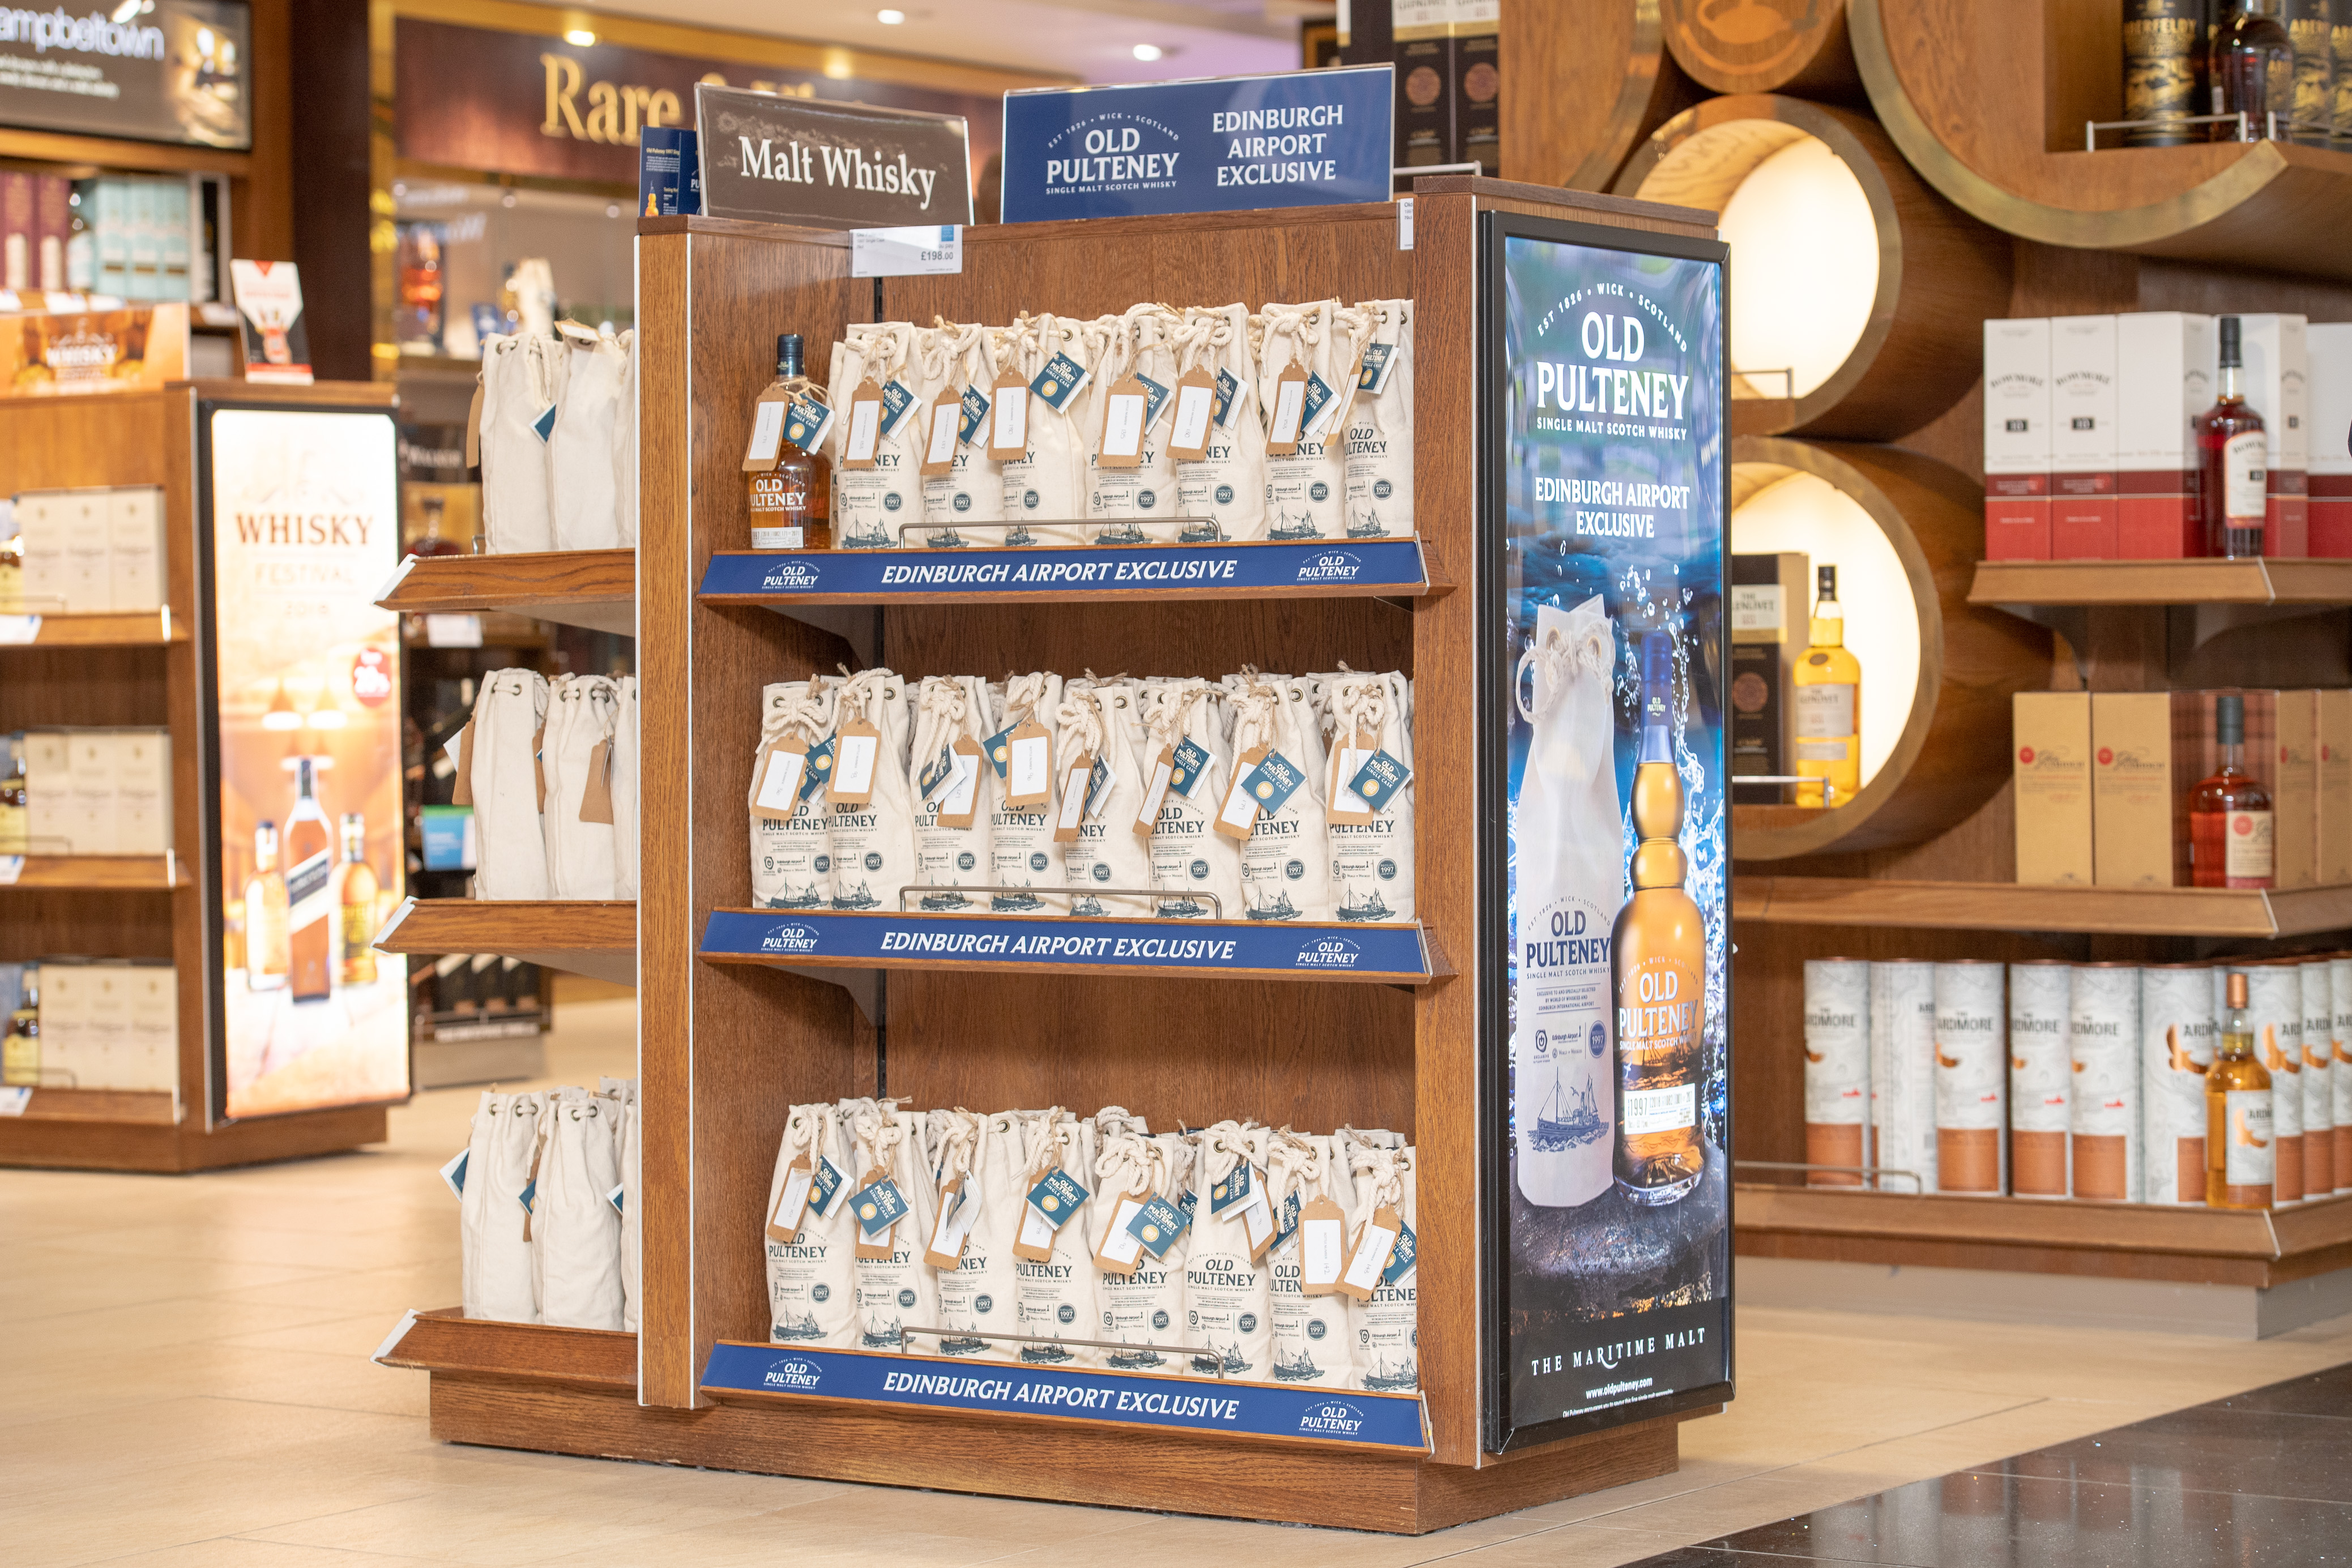 Old Pulteney Offers New Expression Exclusively At Edinburgh Airport World Of Whiskies photo